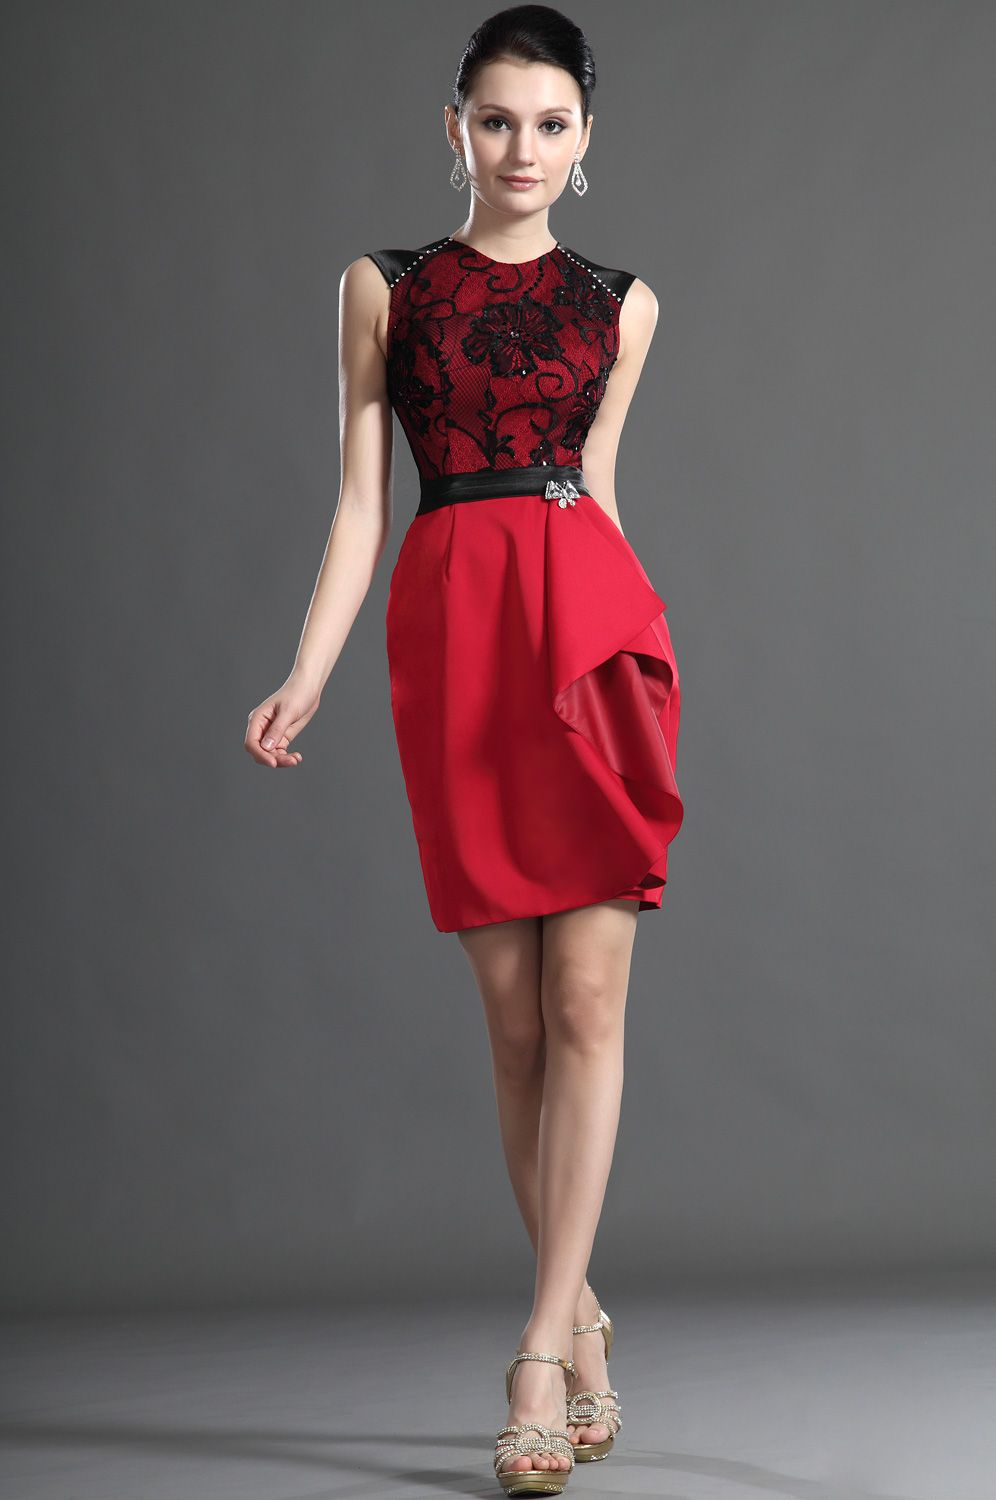 Usd edressit elegant sleeveless red lace mother of the bride